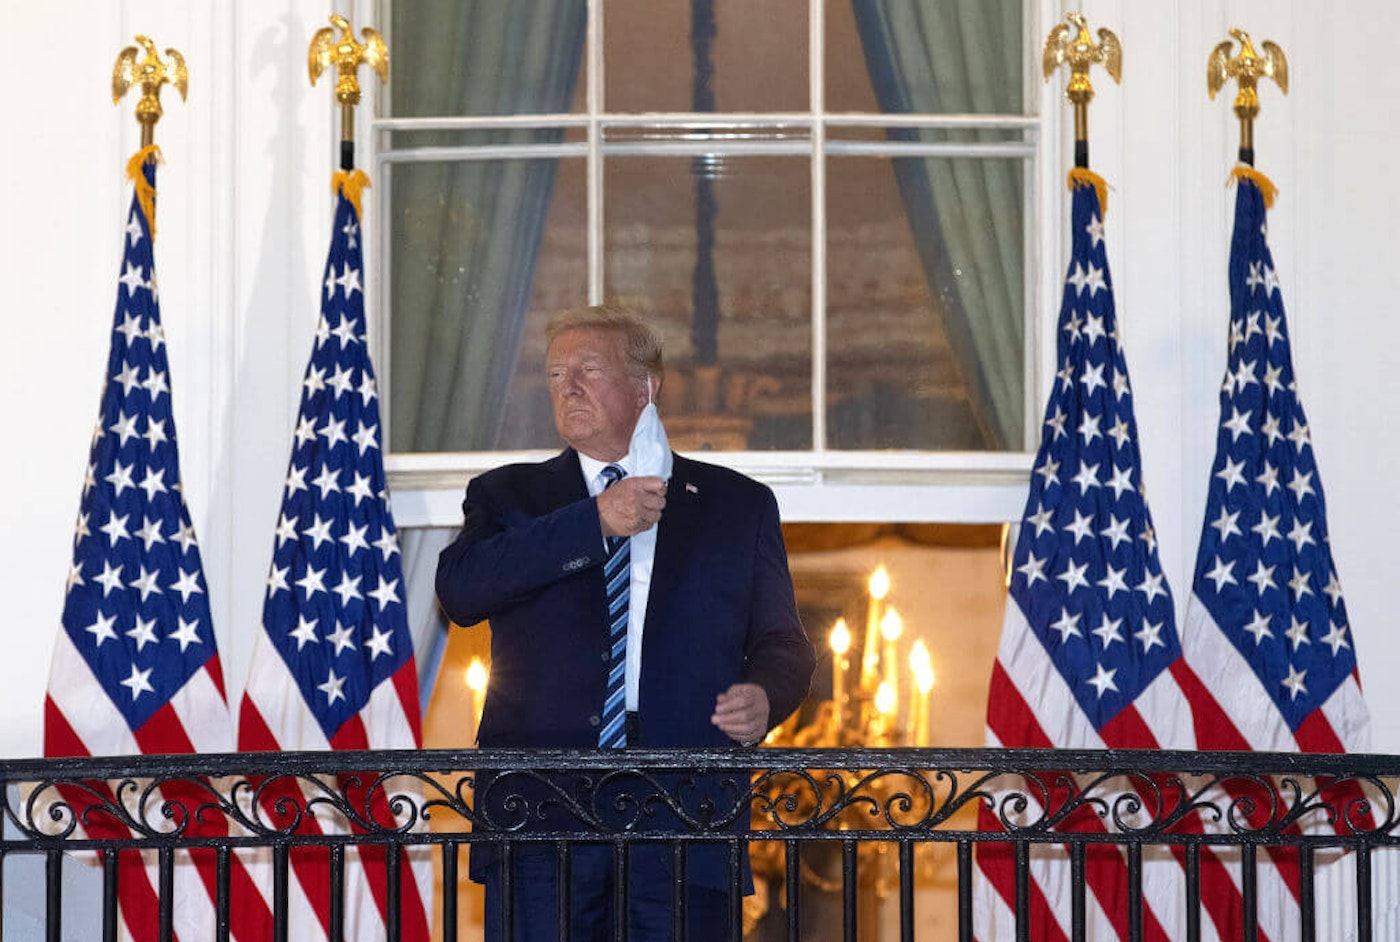 President Donald Trump removes his mask upon return to the White House from Walter Reed National Military Medical Center on October 05, 2020 in Washington, DC. Trump spent three days hospitalized for coronavirus. (Photo by Win McNamee/Getty Images)